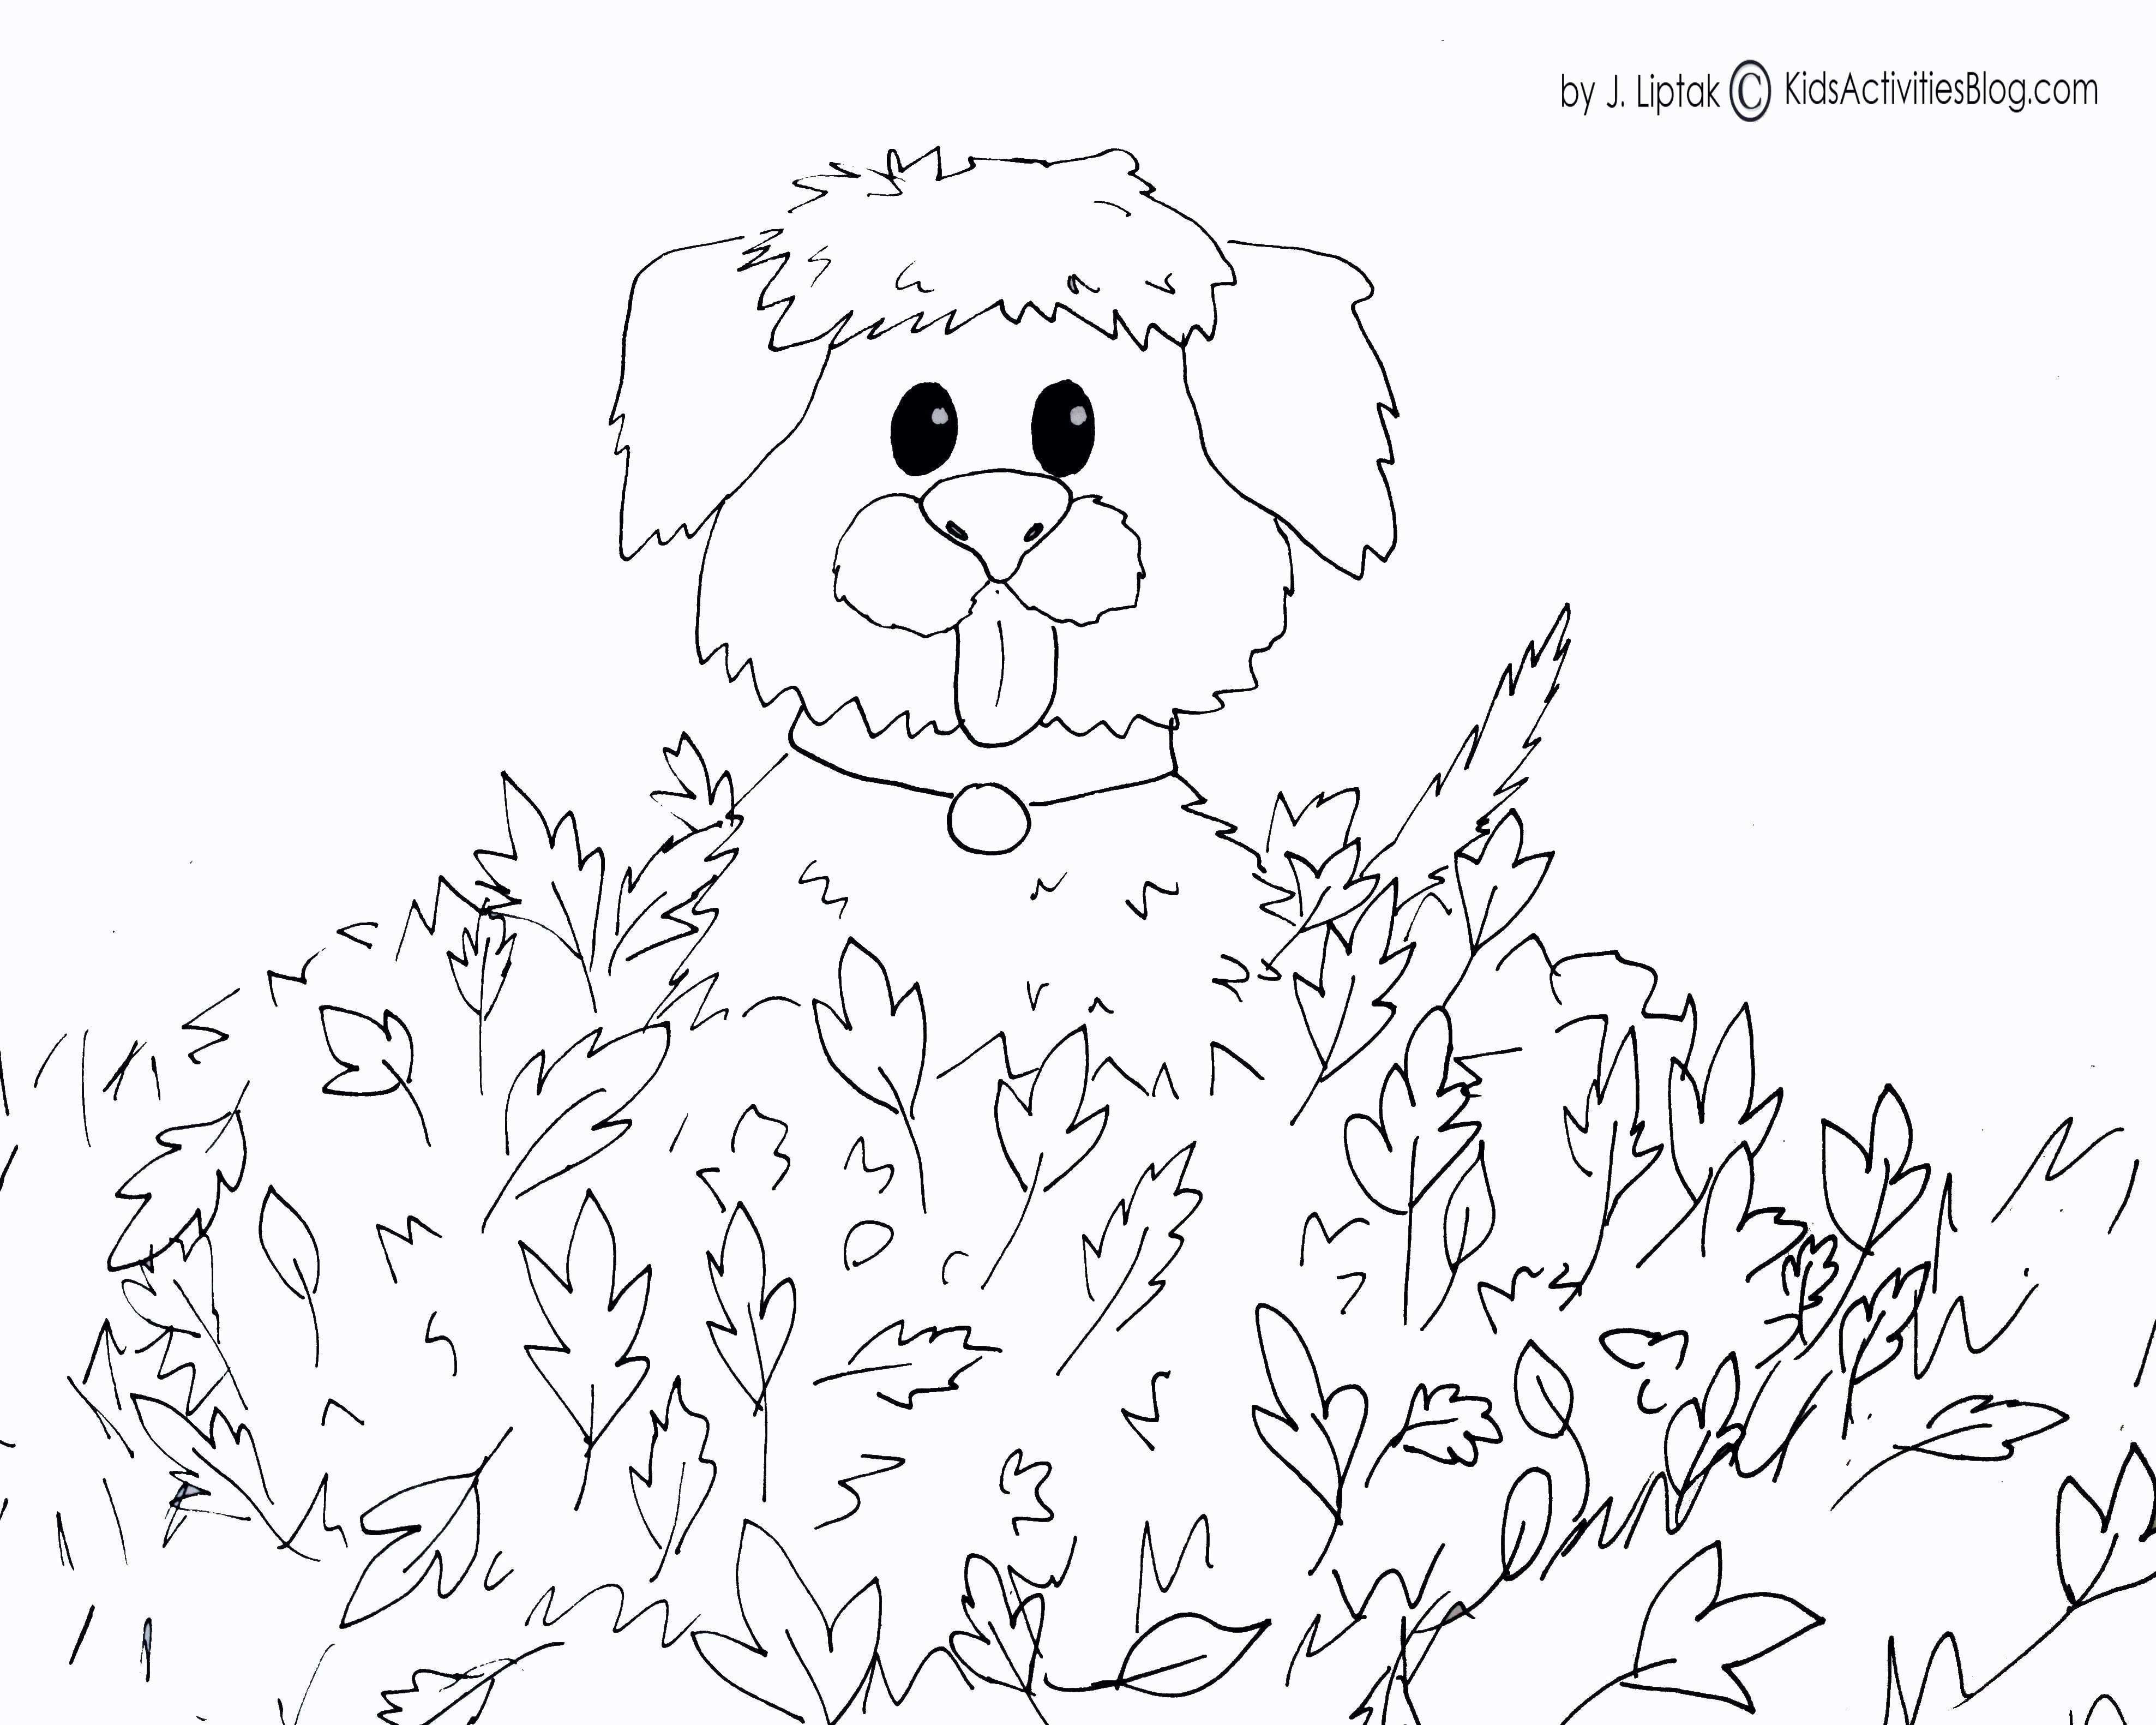 Ausmalbilder Zoo Neu Coloring Pages for Kid New Olchis Ausmalbilder Bilder Zum Fotos